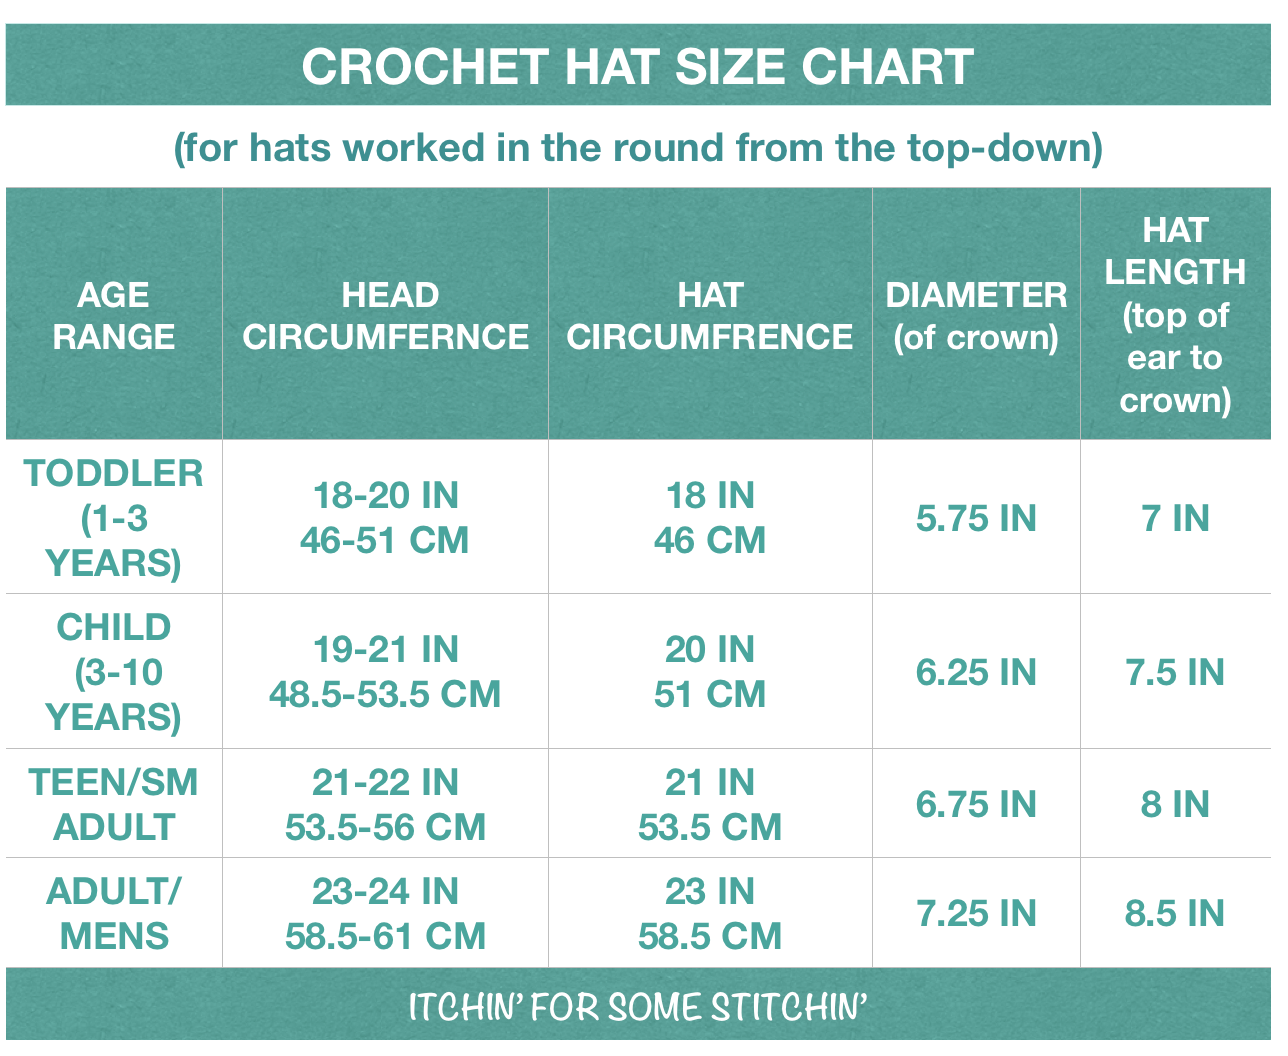 Crochet Hat Size Chart for hats worked in the round from the top-down by www.itchinforsomestitchin.com